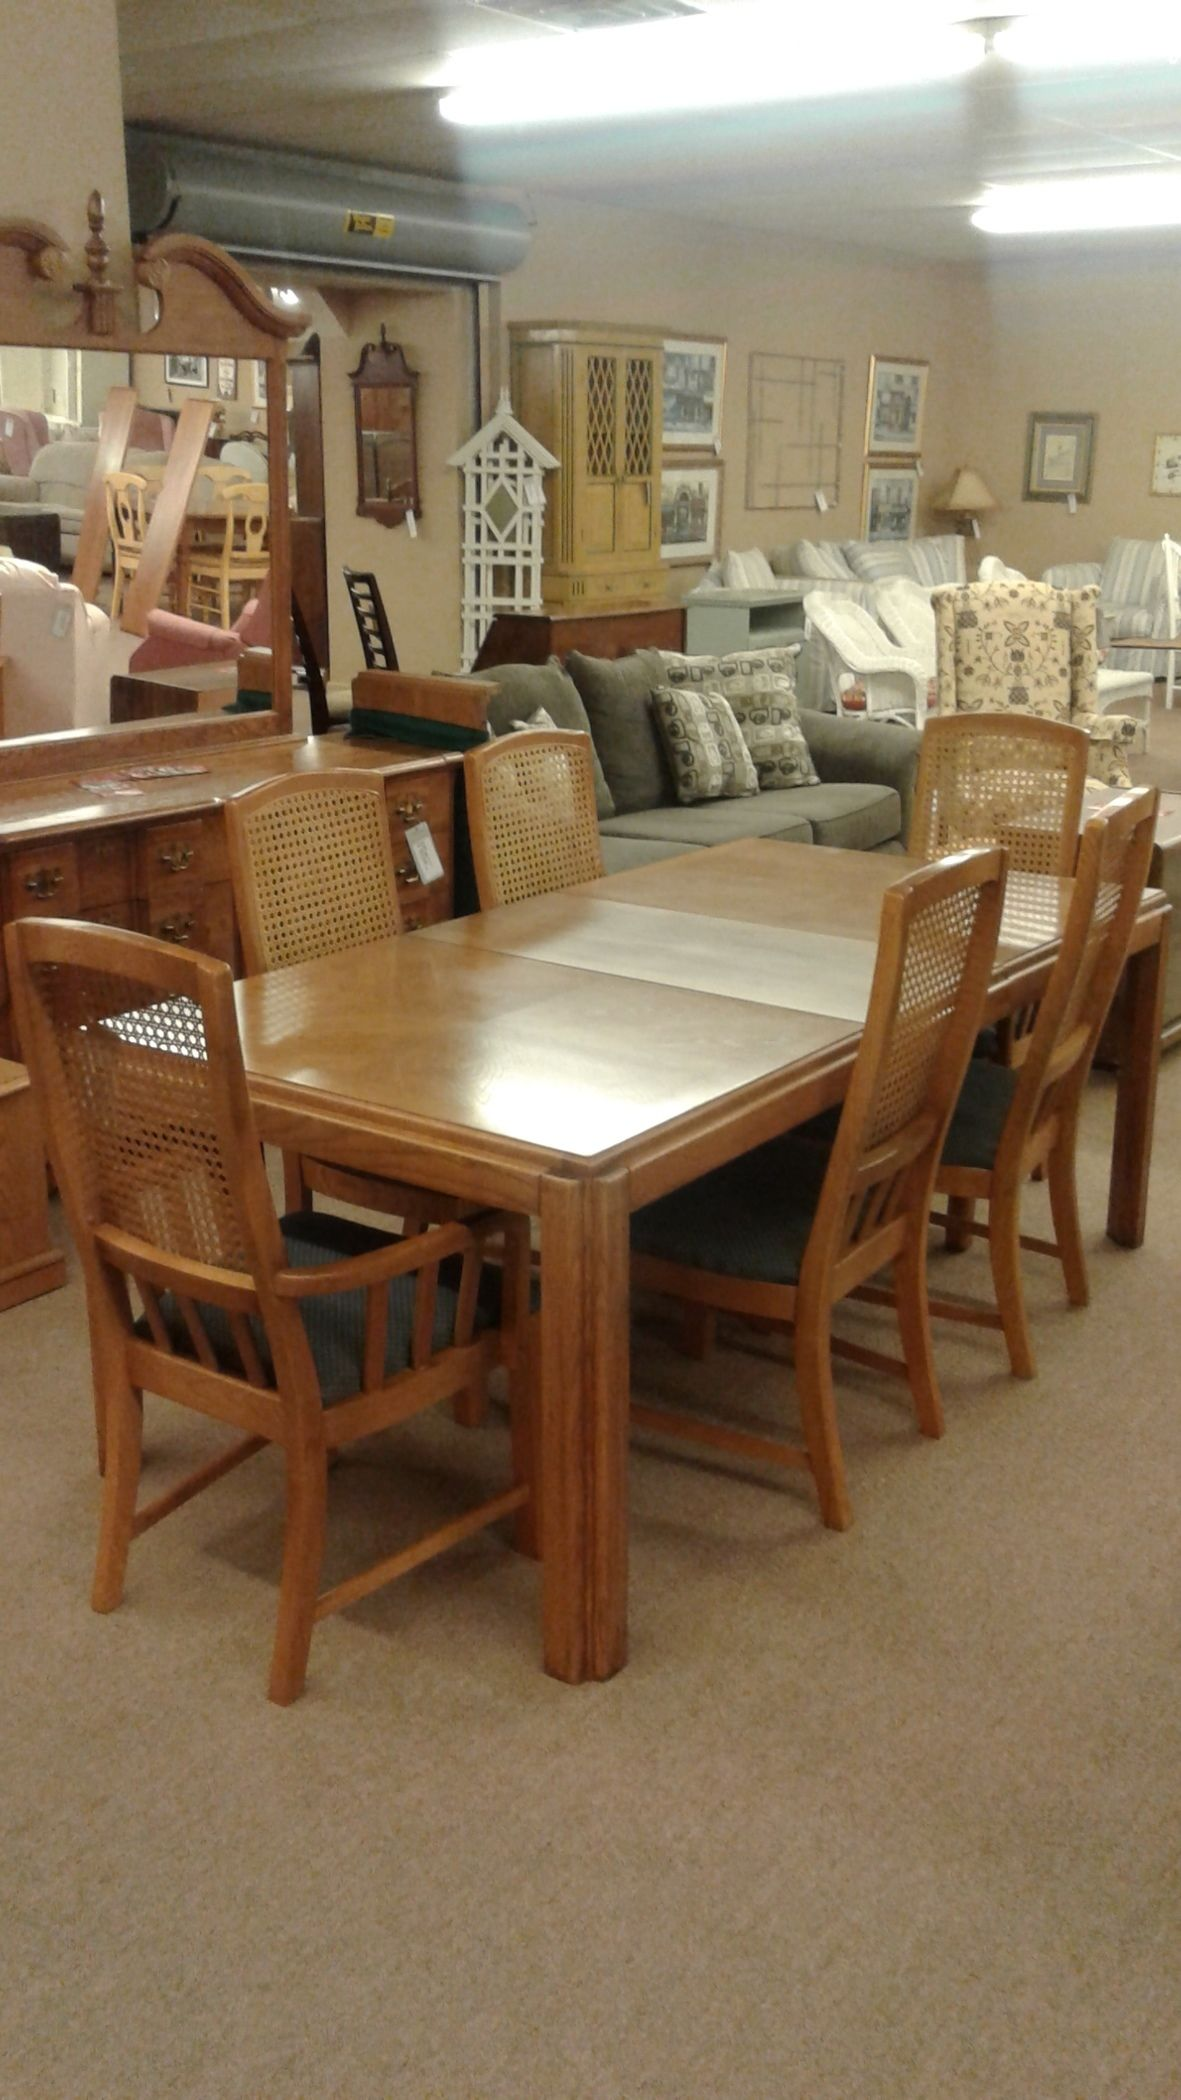 Basset Dining Room Bassett Dining Table W Chairs Delmarva Furniture Consignment